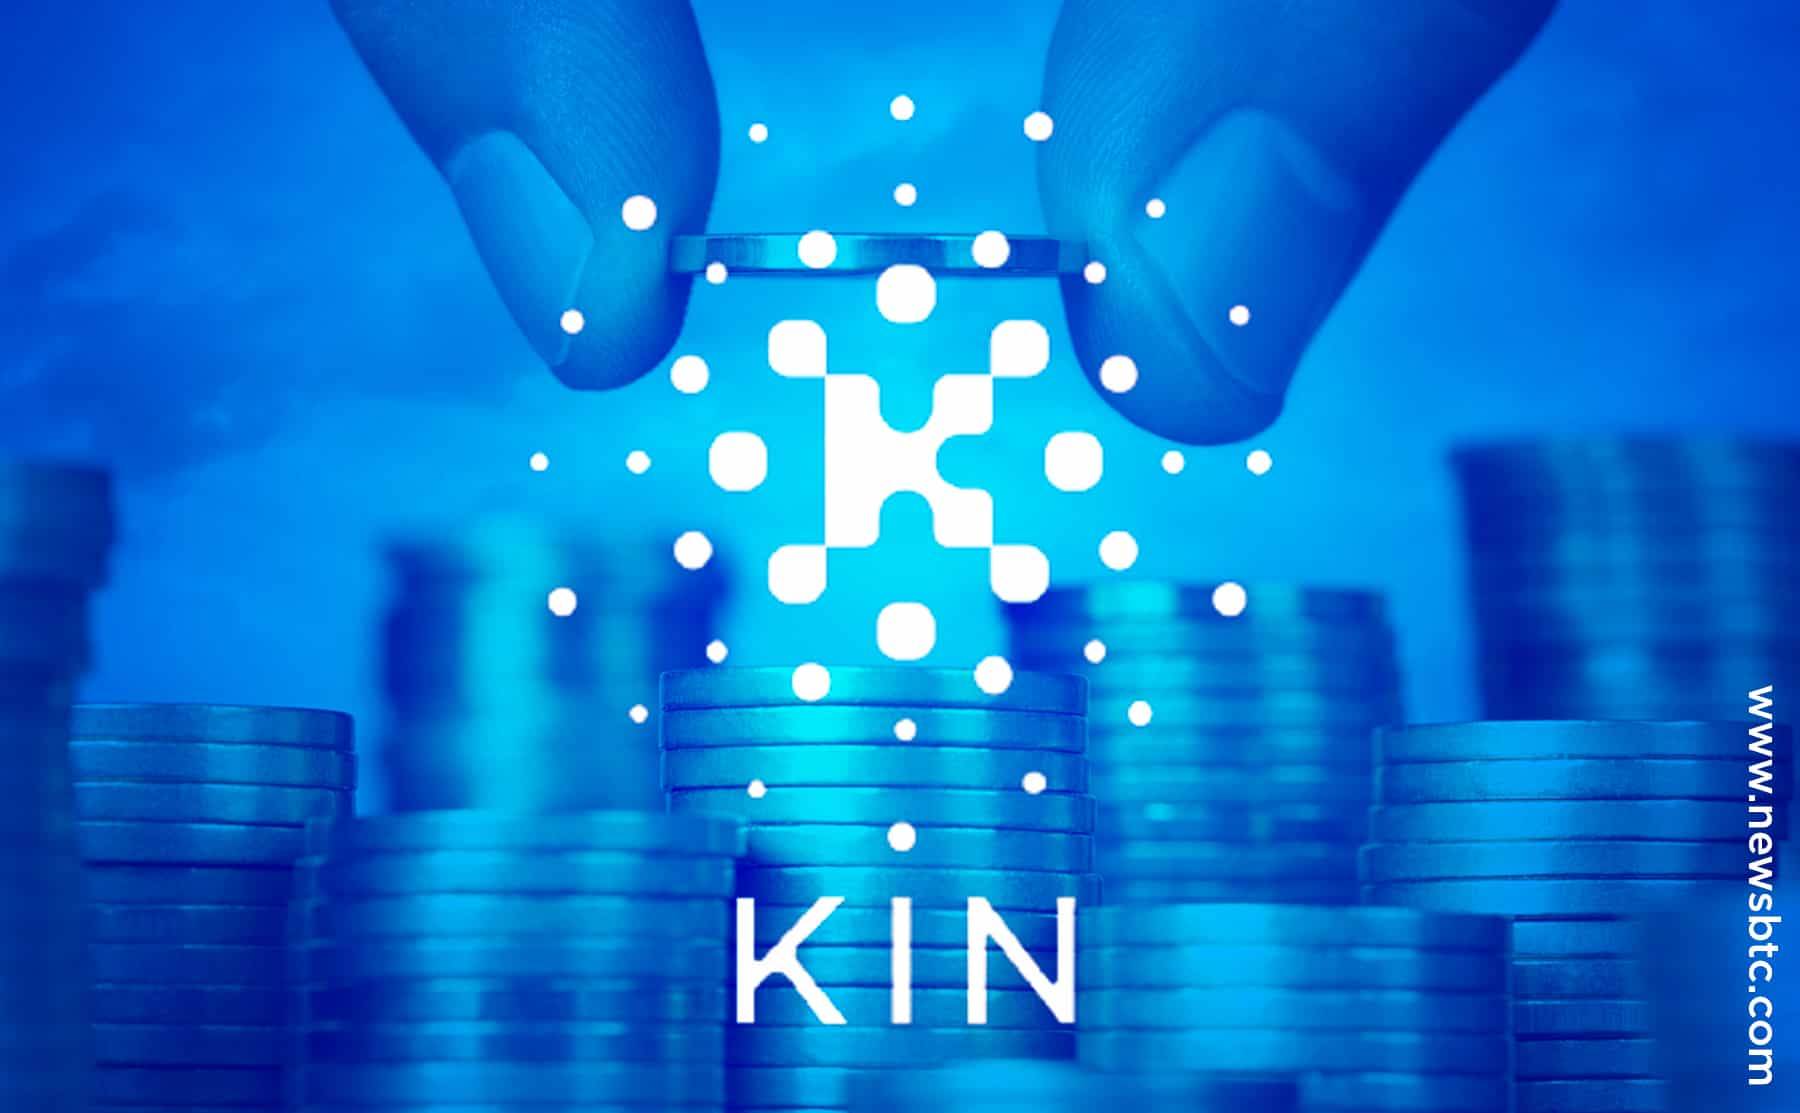 kin-kik-cryptocurrency